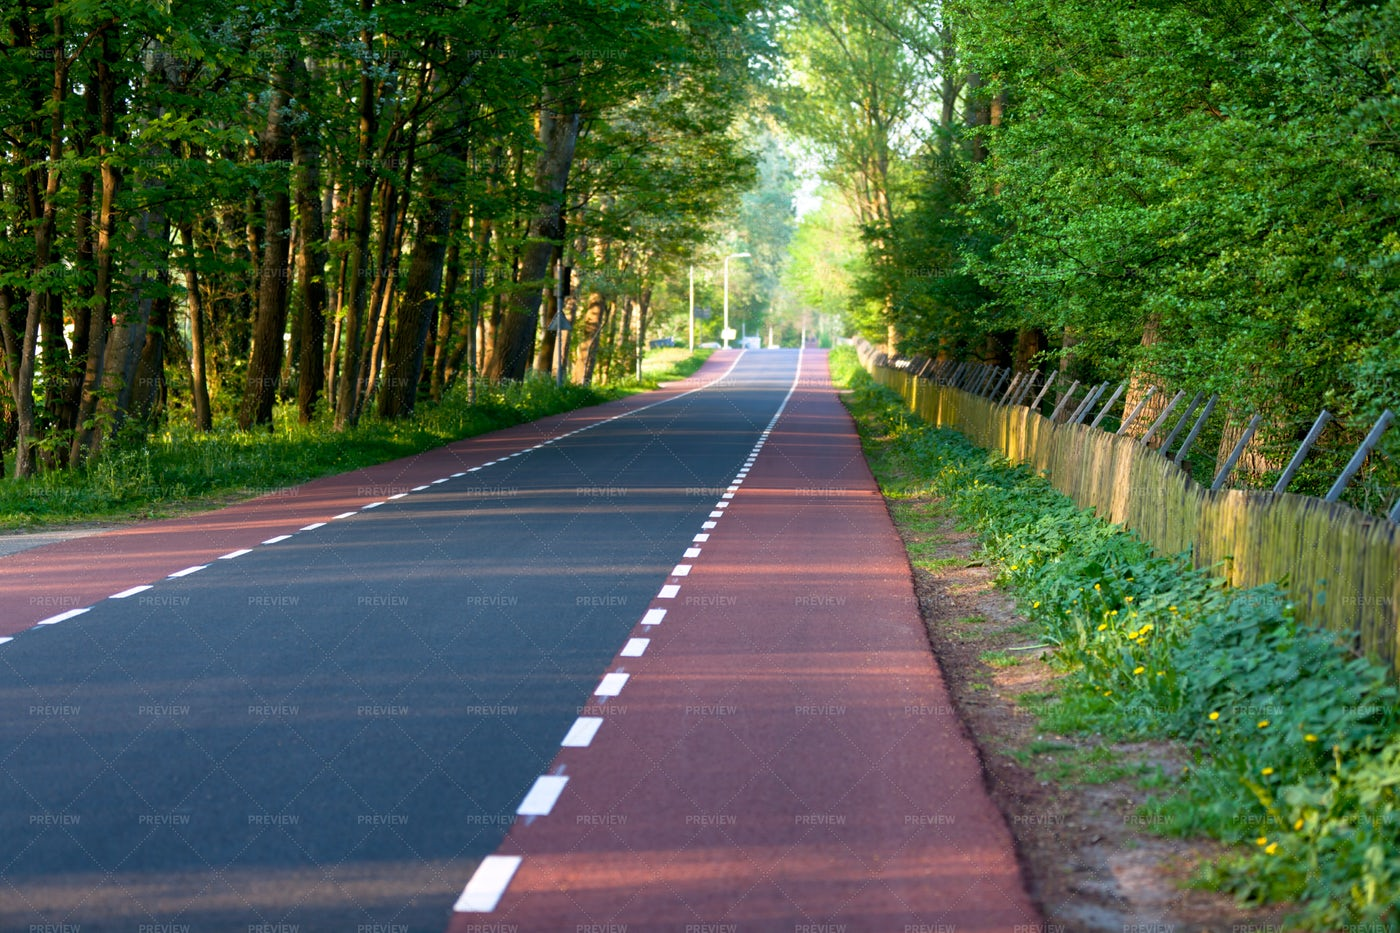 Empty Road With Bike Paths: Stock Photos